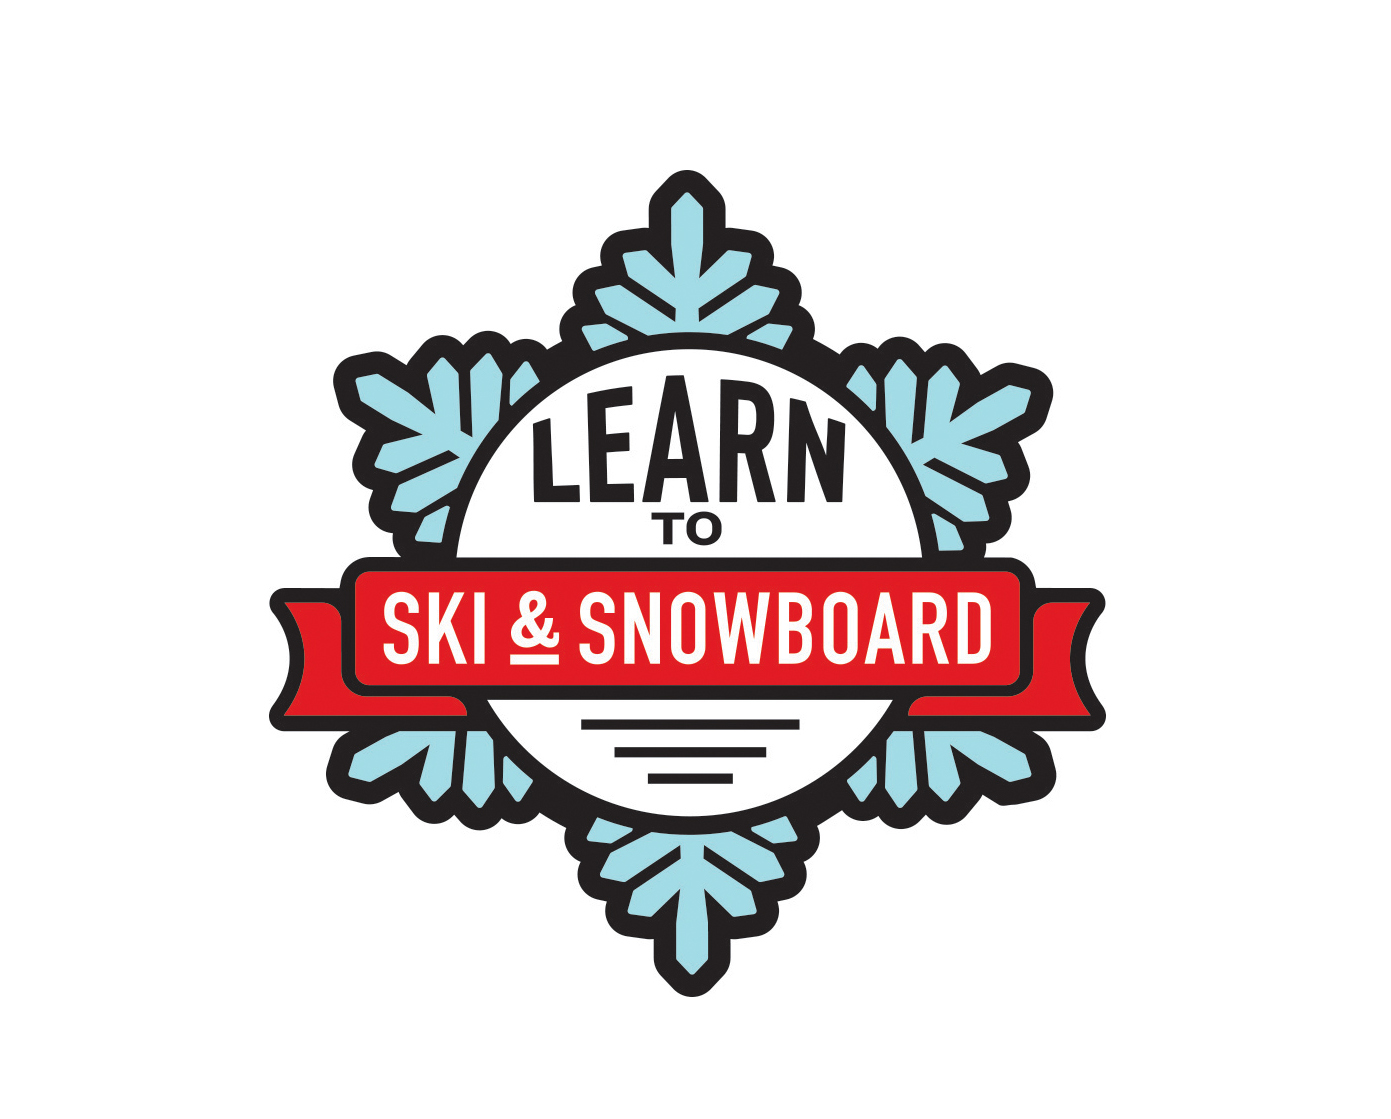 Learn to Ski and Snowboard - Hey There: We're glad that you want to learn how to ski or snowboard and the best way todo that is by taking lesson from trained instructors. You wouldn't ask a friend or family member to give you a tattoo, right? So why would you expect them to teach you how to ski or snowboard? Or, even try and teach yourself?